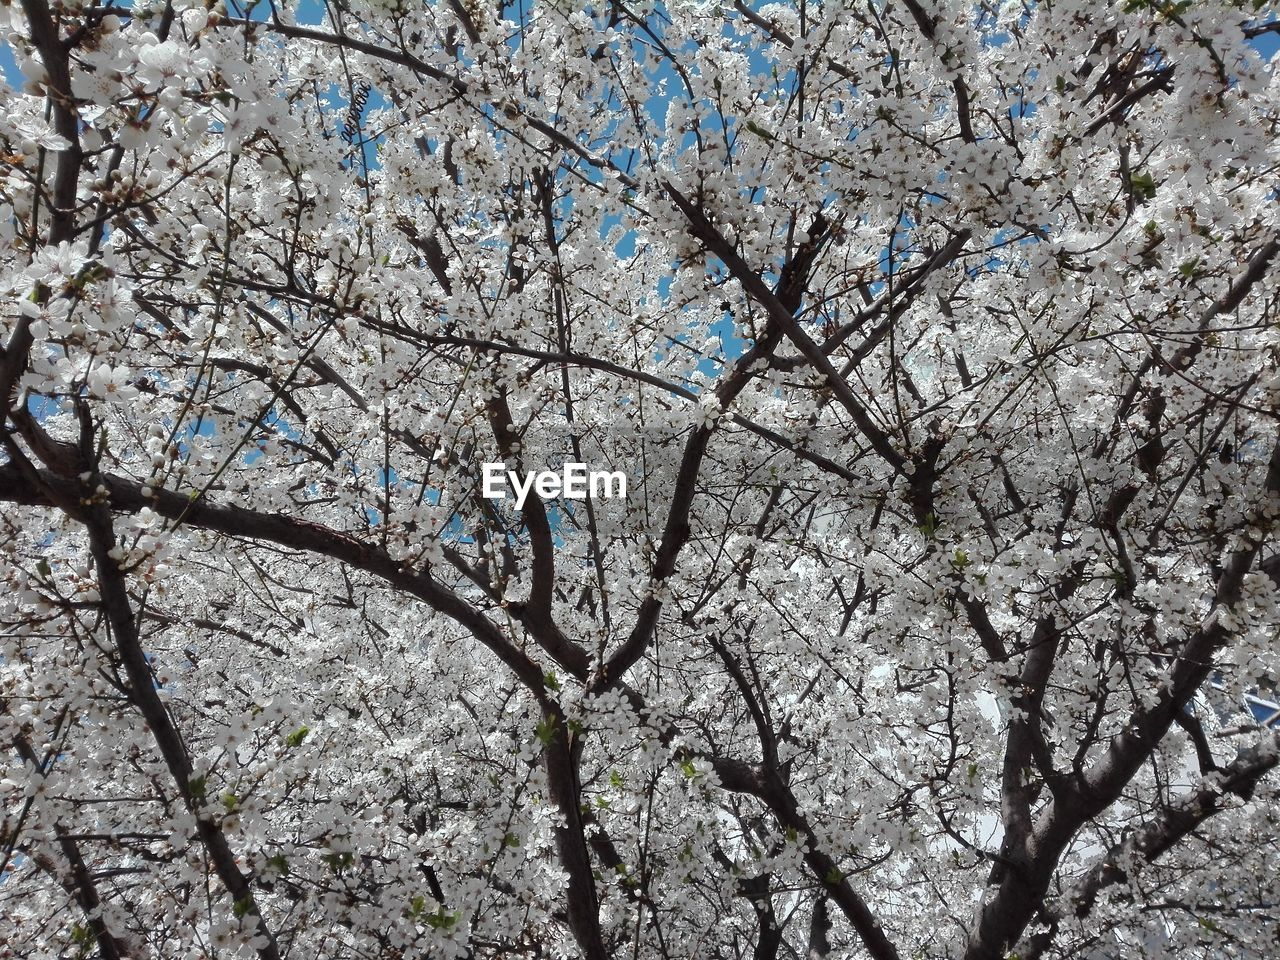 tree, plant, branch, flower, flowering plant, low angle view, blossom, springtime, growth, fragility, nature, beauty in nature, day, no people, cherry blossom, sky, freshness, vulnerability, cherry tree, full frame, outdoors, spring